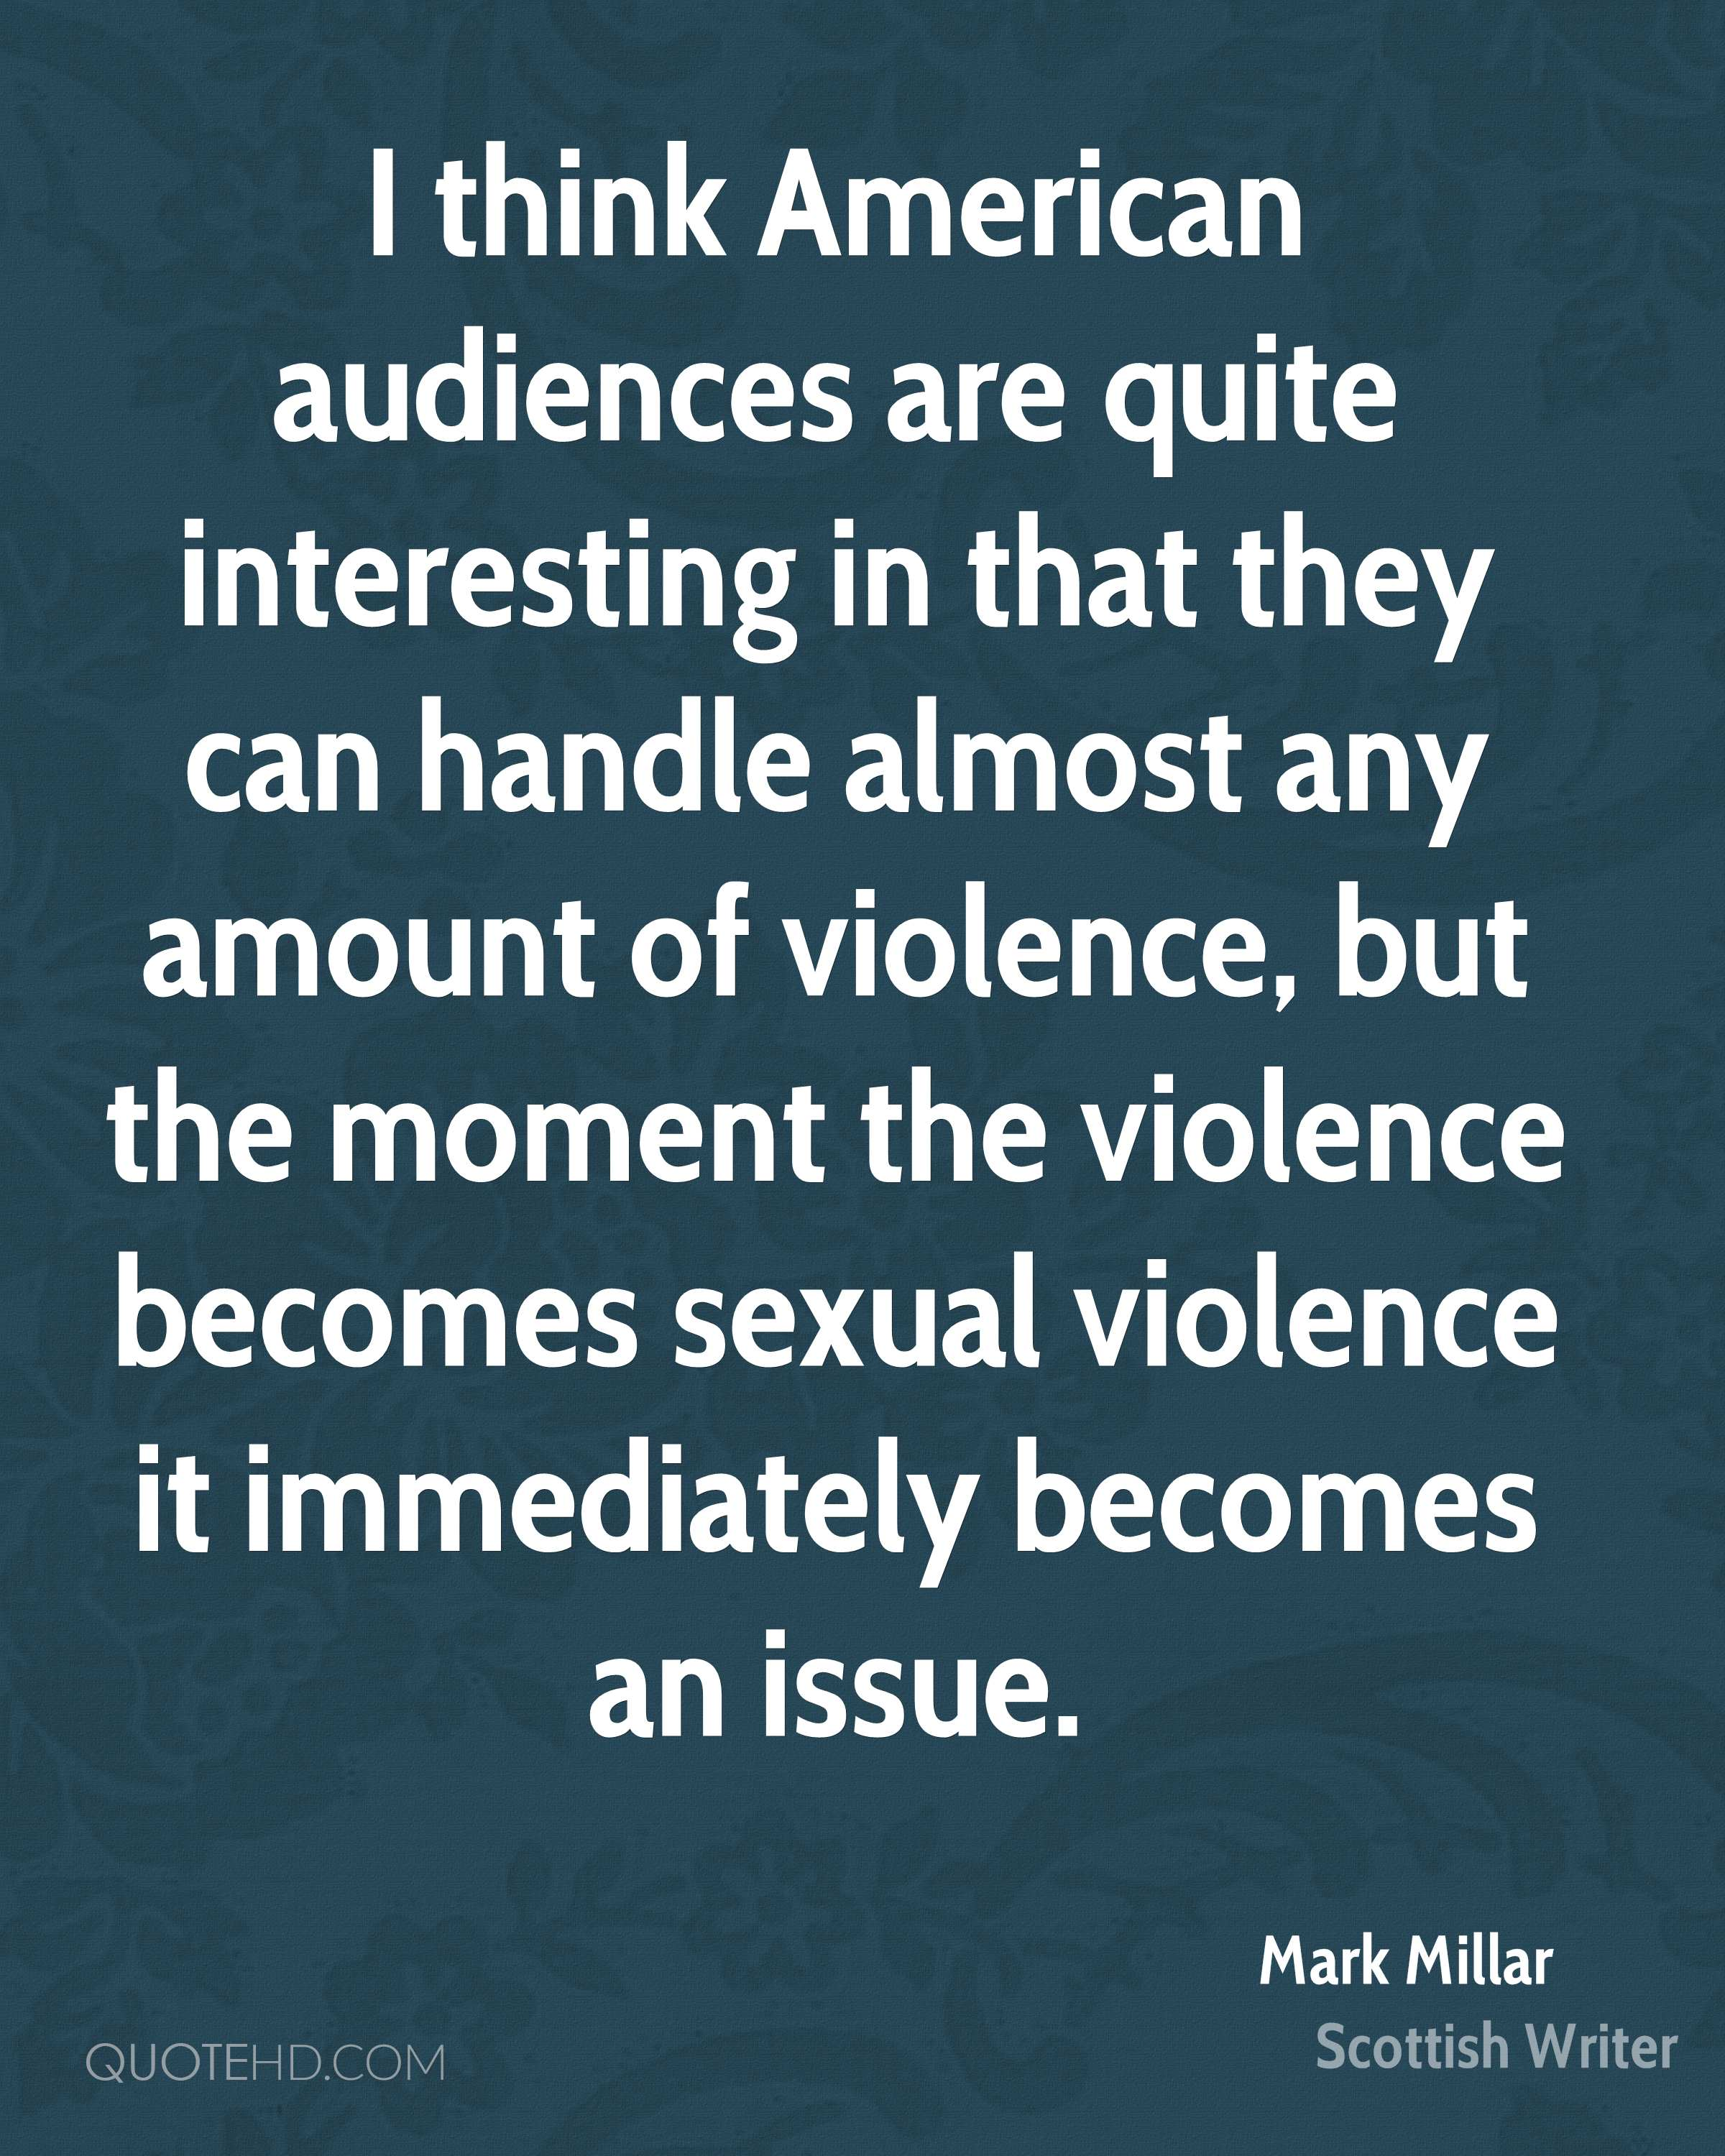 I think American audiences are quite interesting in that they can handle almost any amount of violence, but the moment the violence becomes sexual violence it immediately becomes an issue.